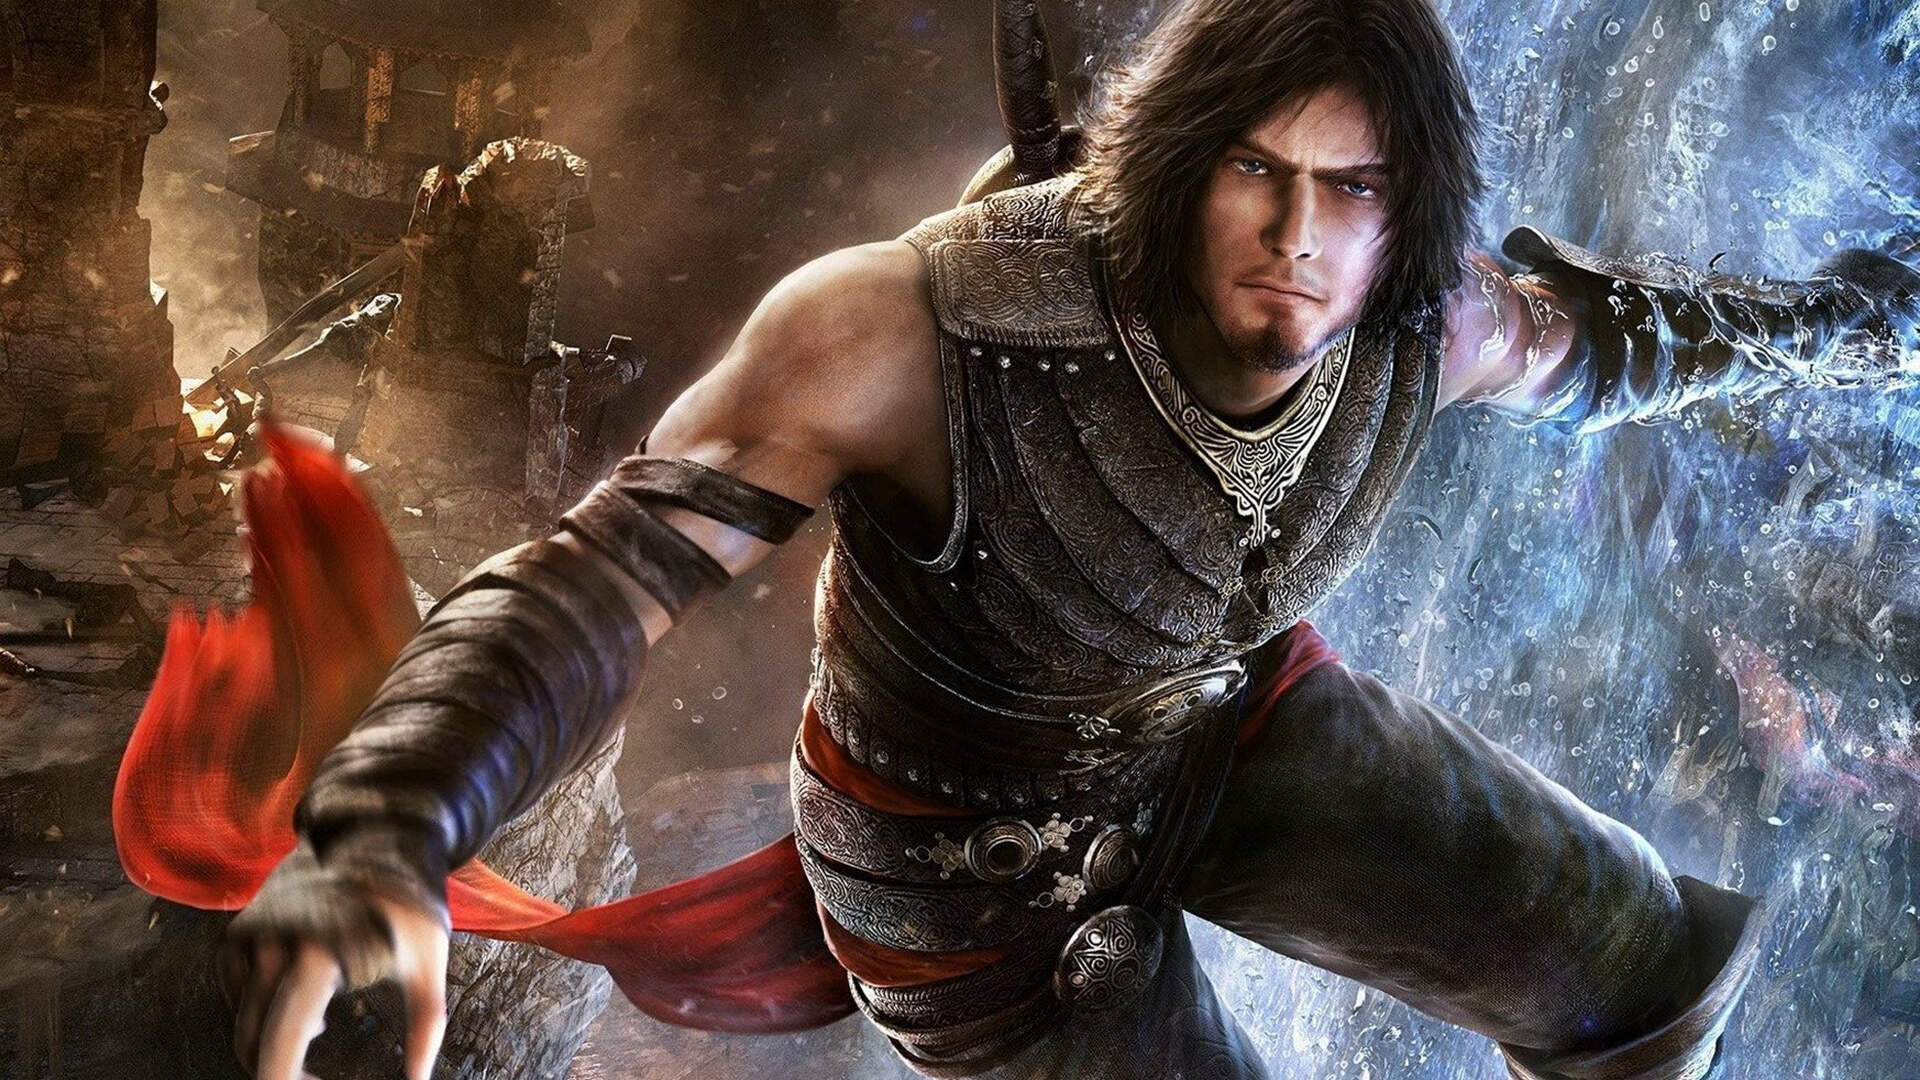 Prince of Persia Remake Leaked on Retailer Listing